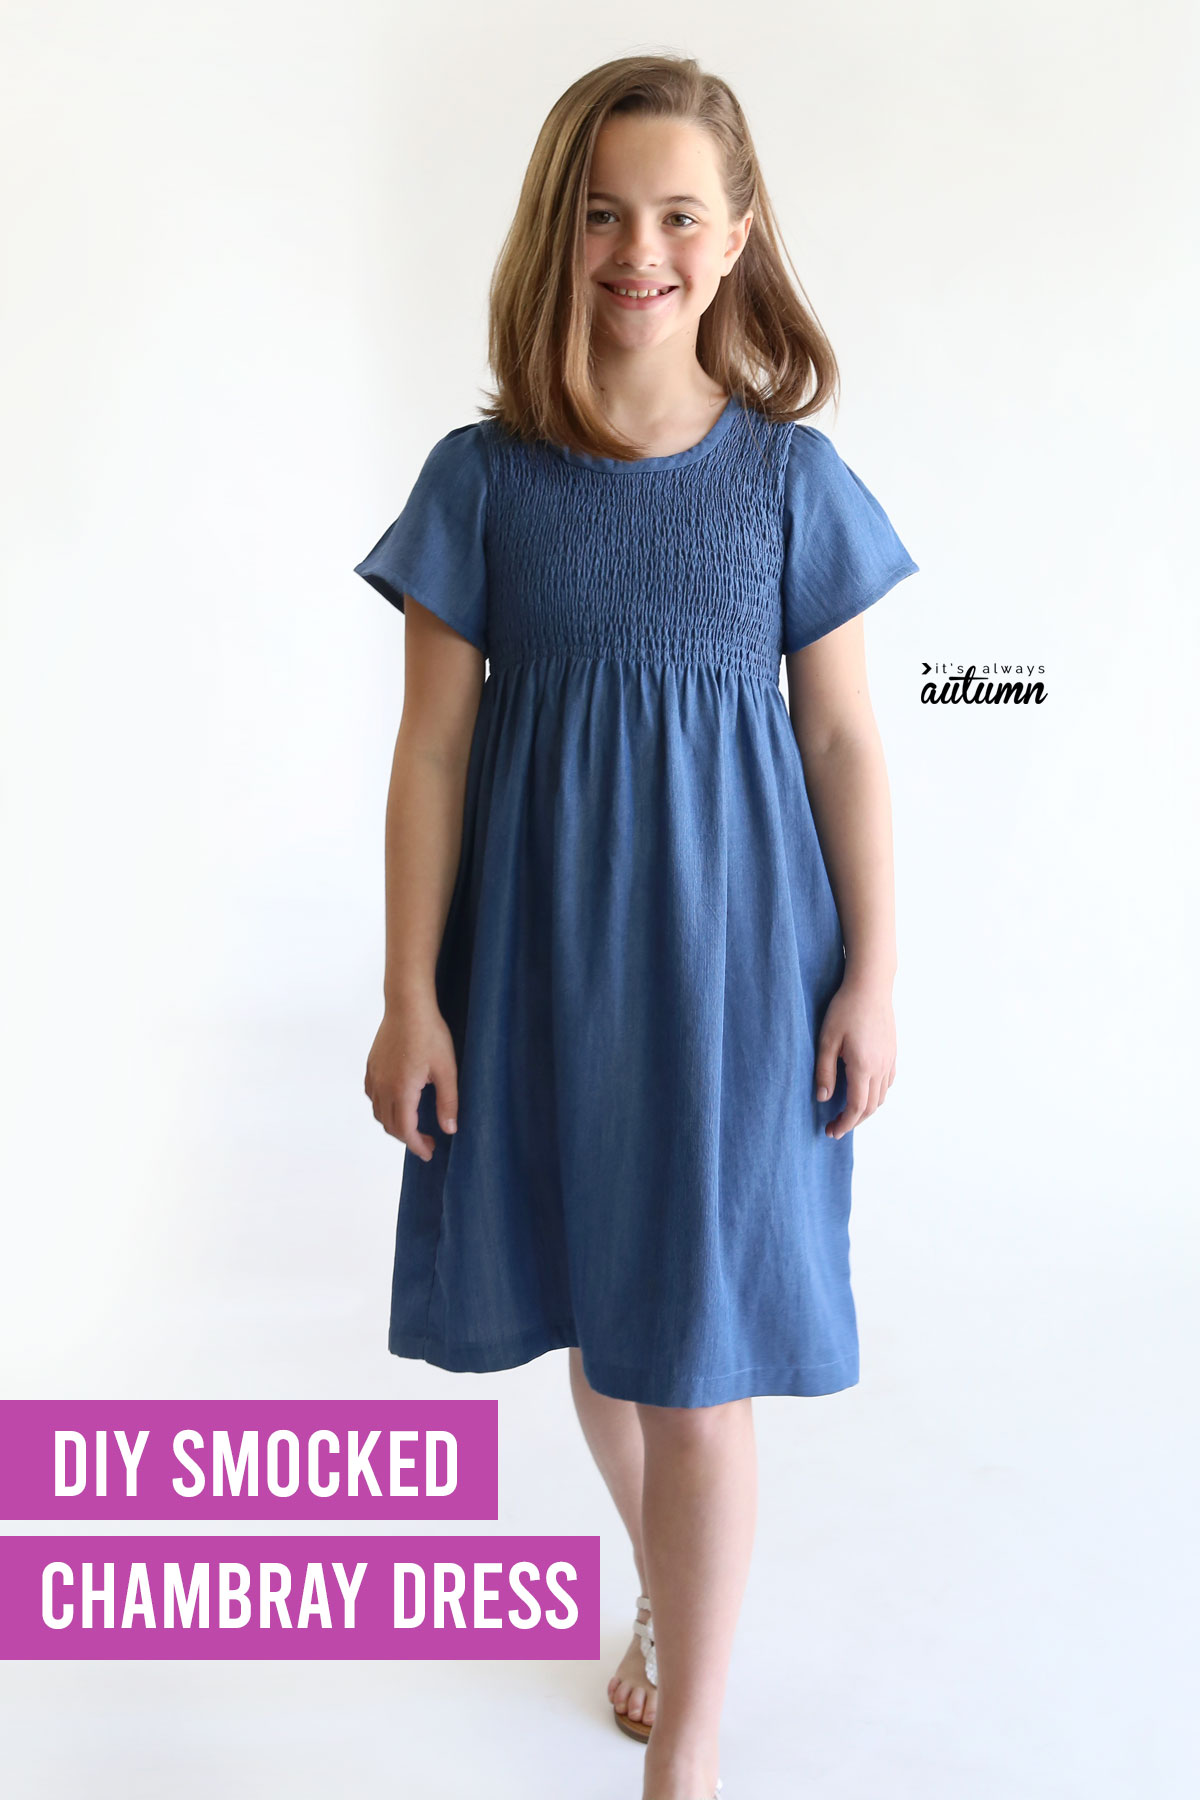 Wearing wearing a chambray dress with short sleeves, gathered top, and full skirt; DIY smocked chambray dress